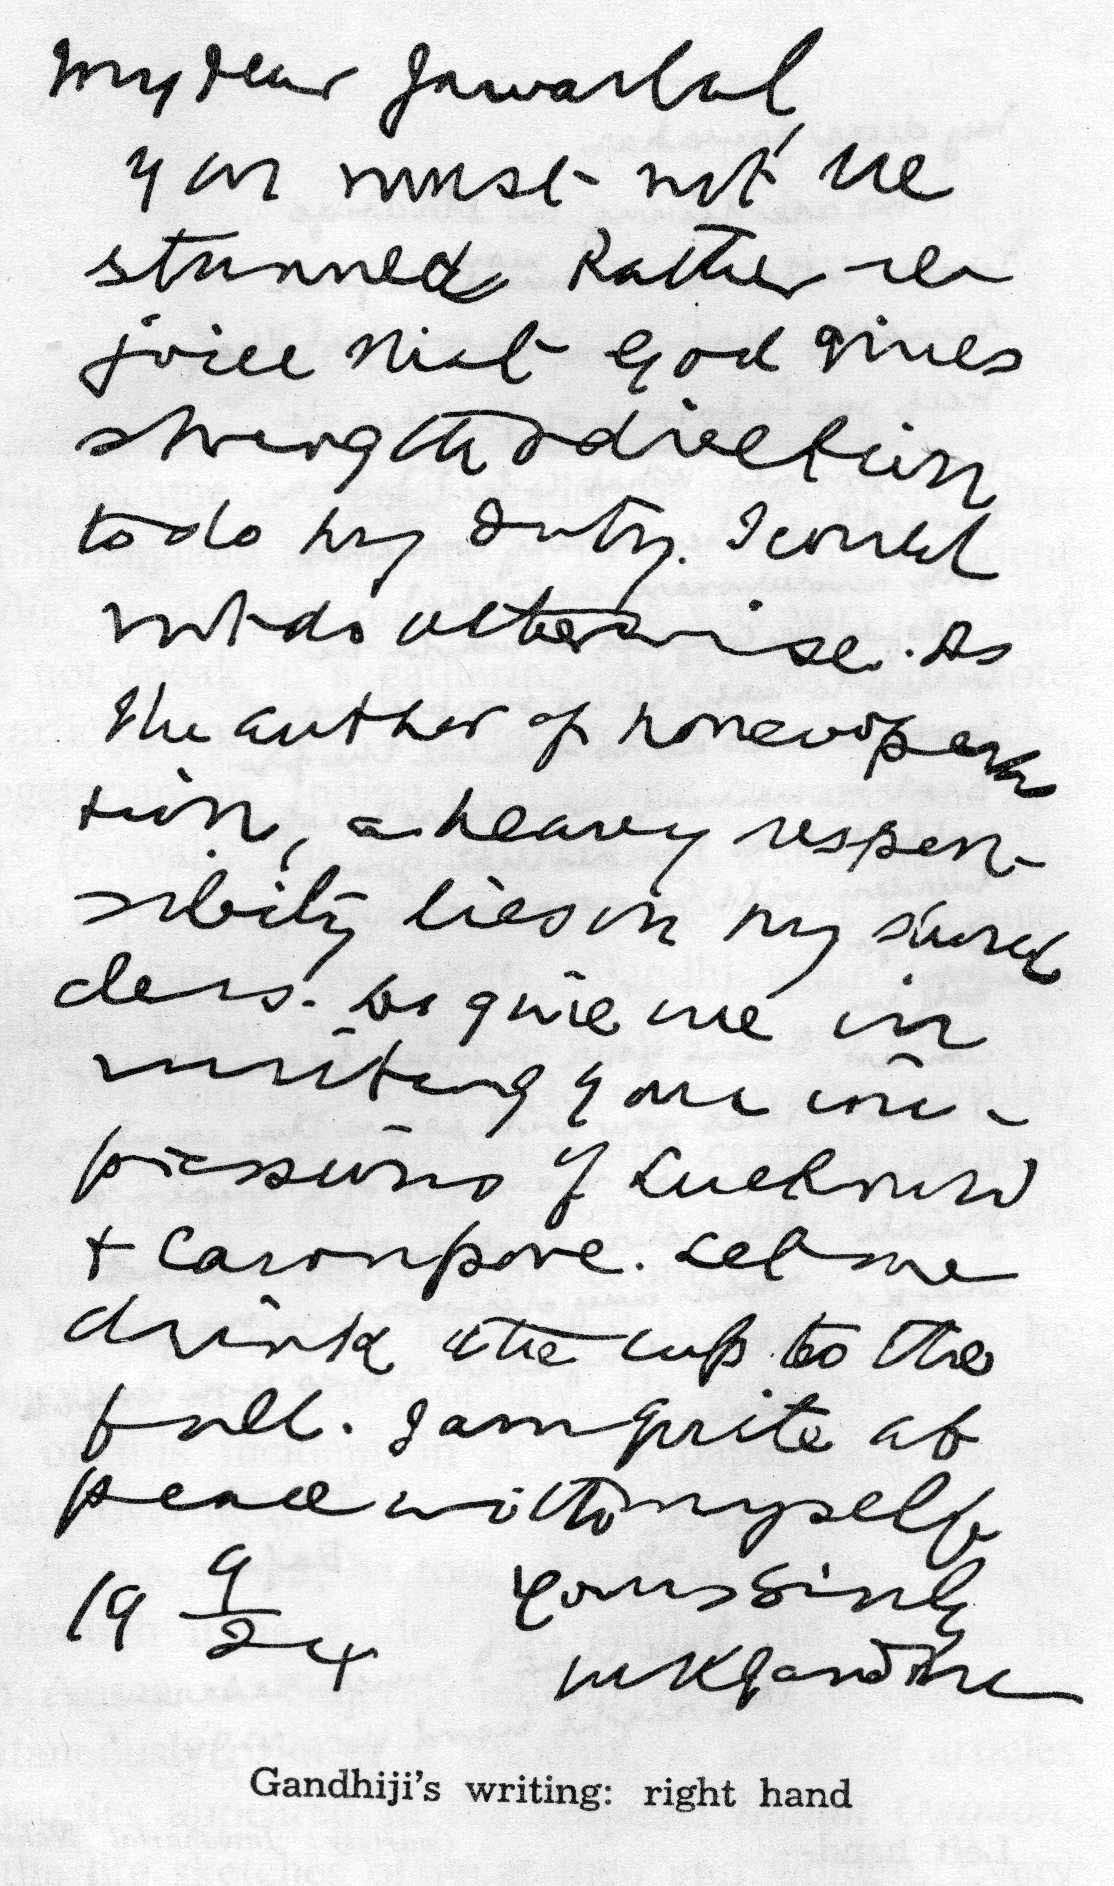 Gandhi's handwriting with his right hand